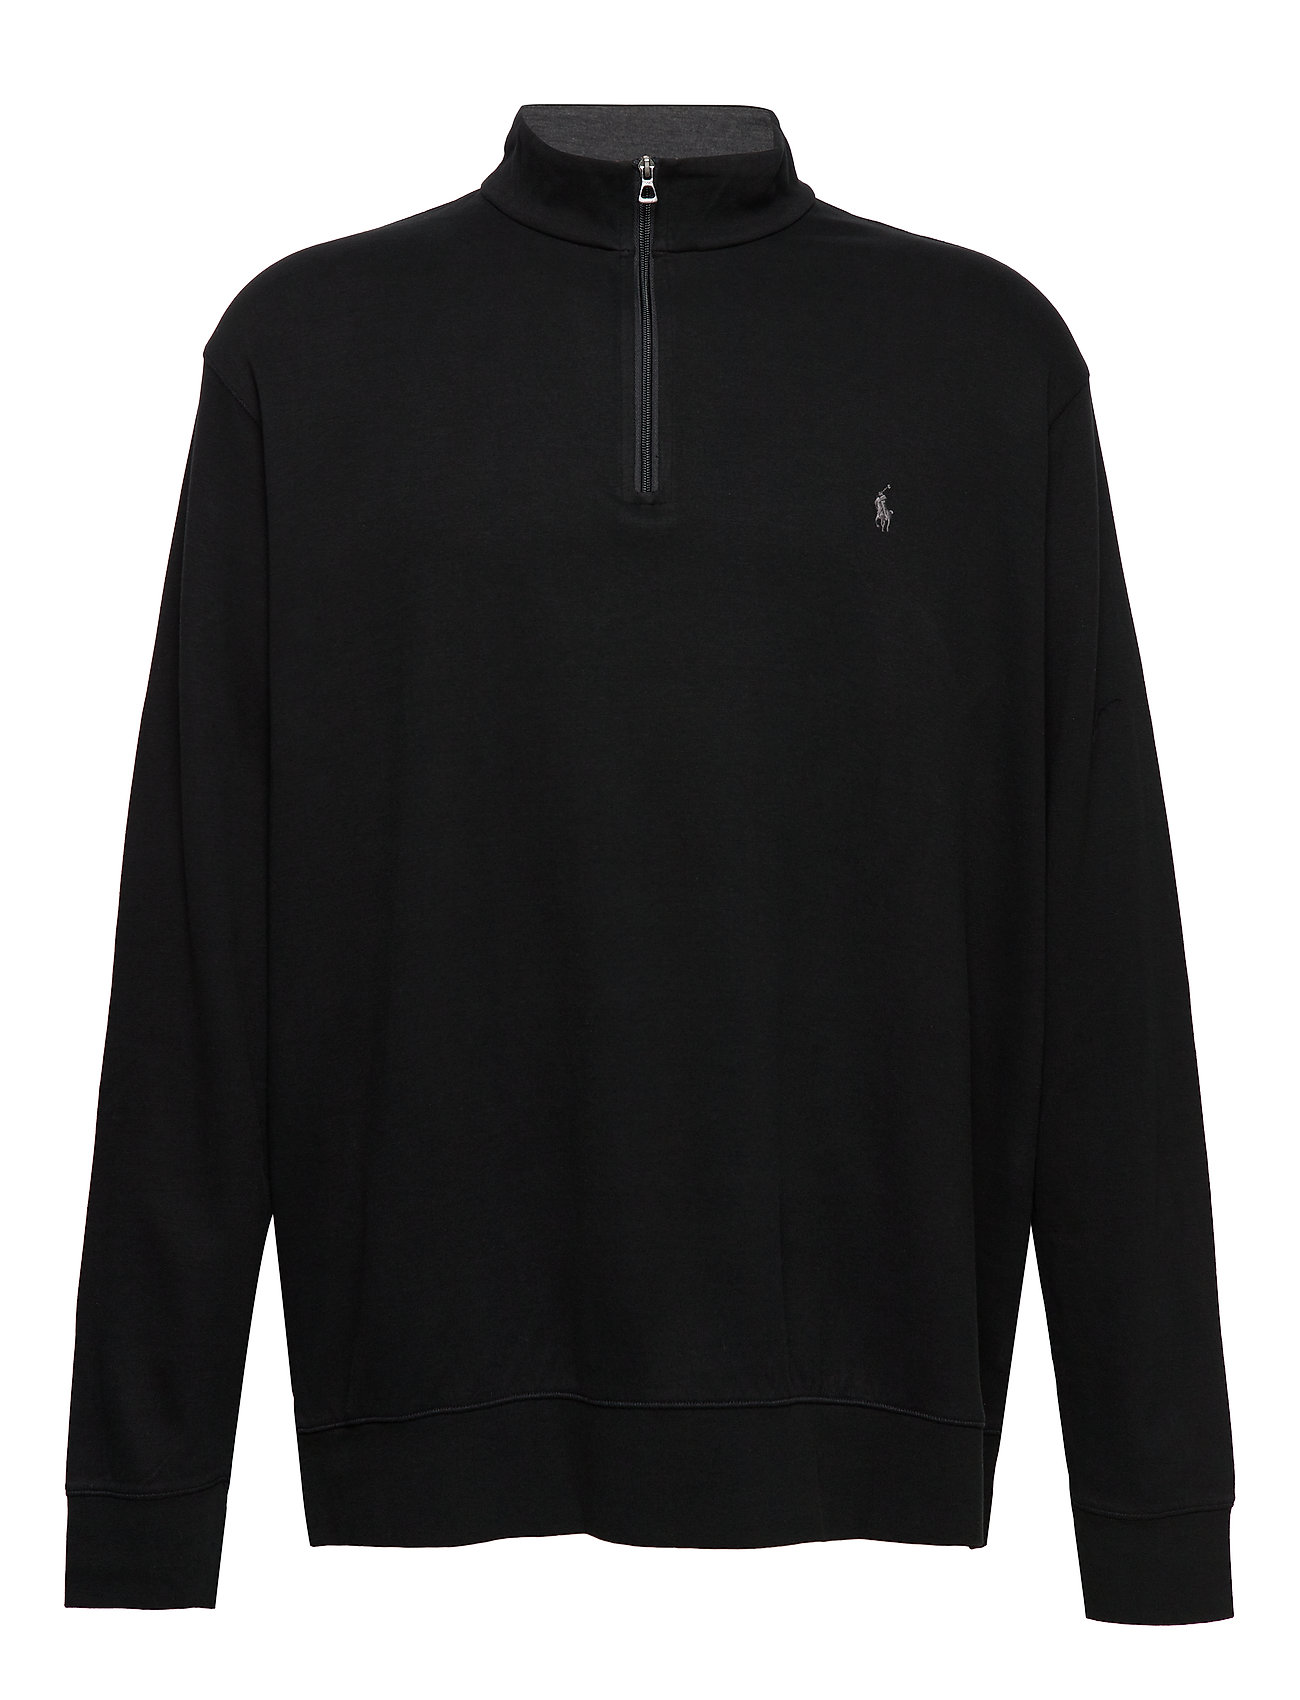 Polo Ralph Lauren Big & Tall Luxury Jersey Pullover - POLO BLACK